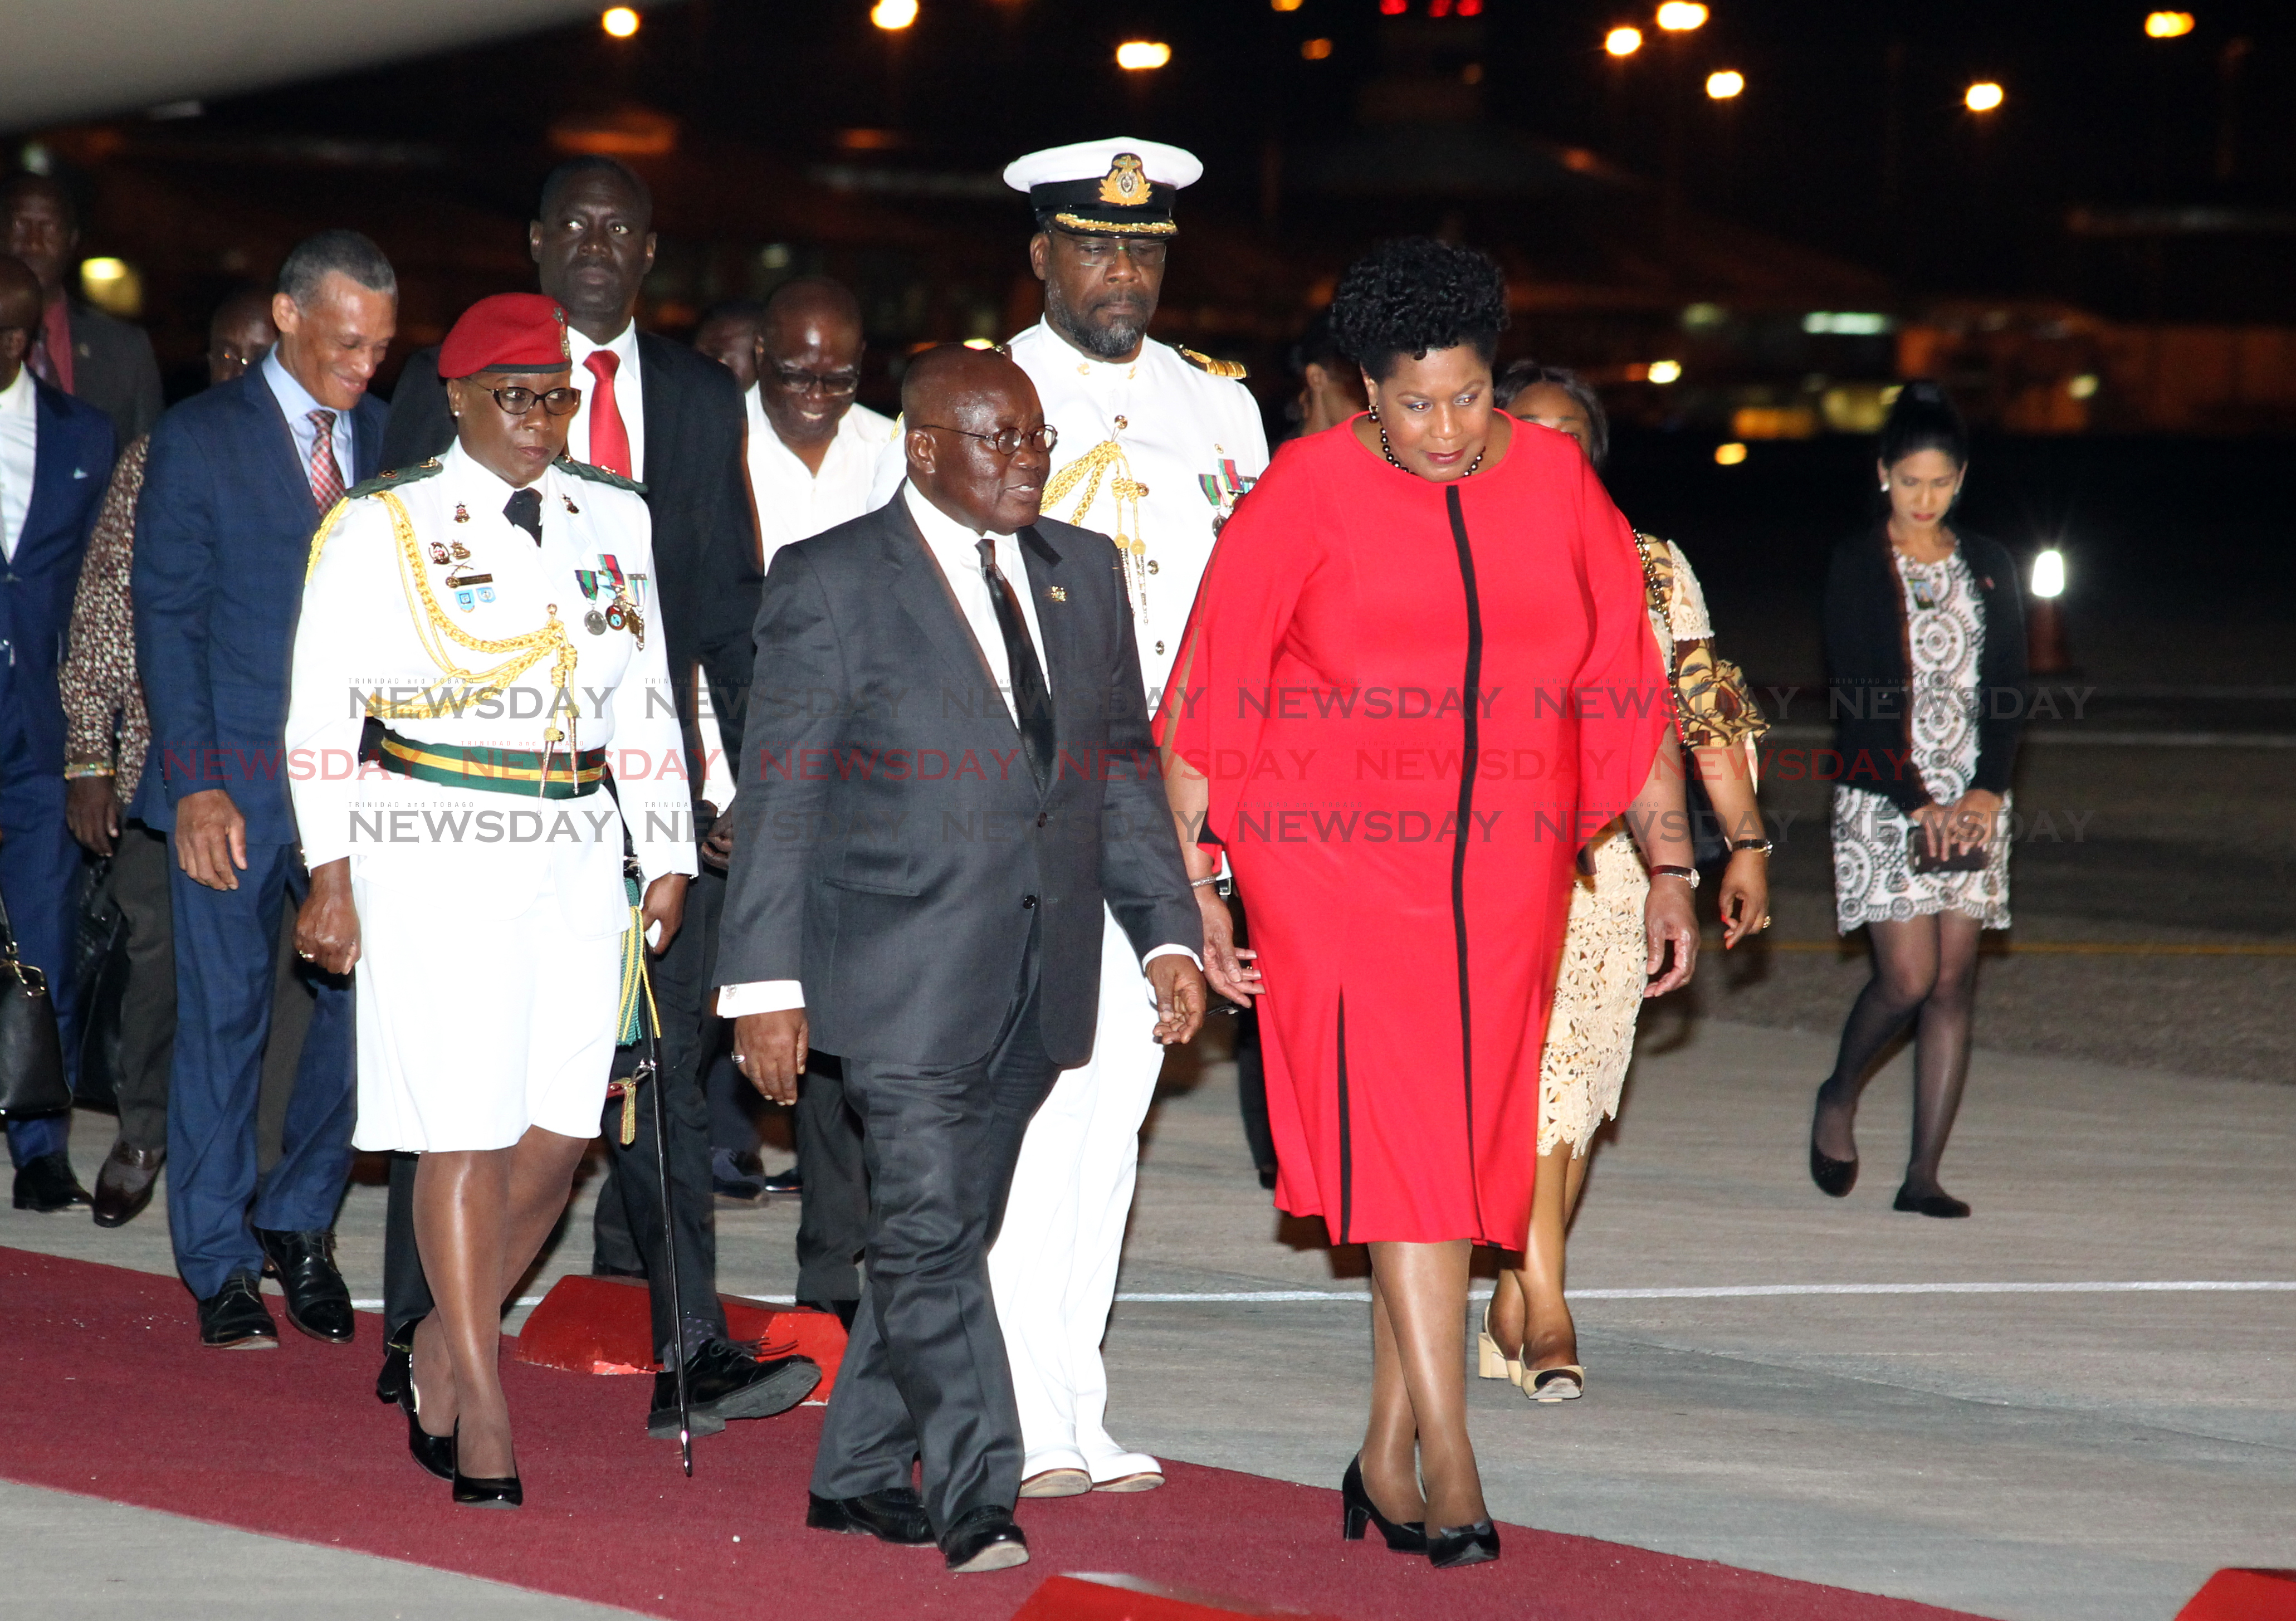 Her Excellency, Madame Justice Paula-Mae Weekes, greets his excellency Nana Akufi-Addo, President of Ghana, on his arrival to TT at the start of his official state visit.  Photo: Roger Jacob